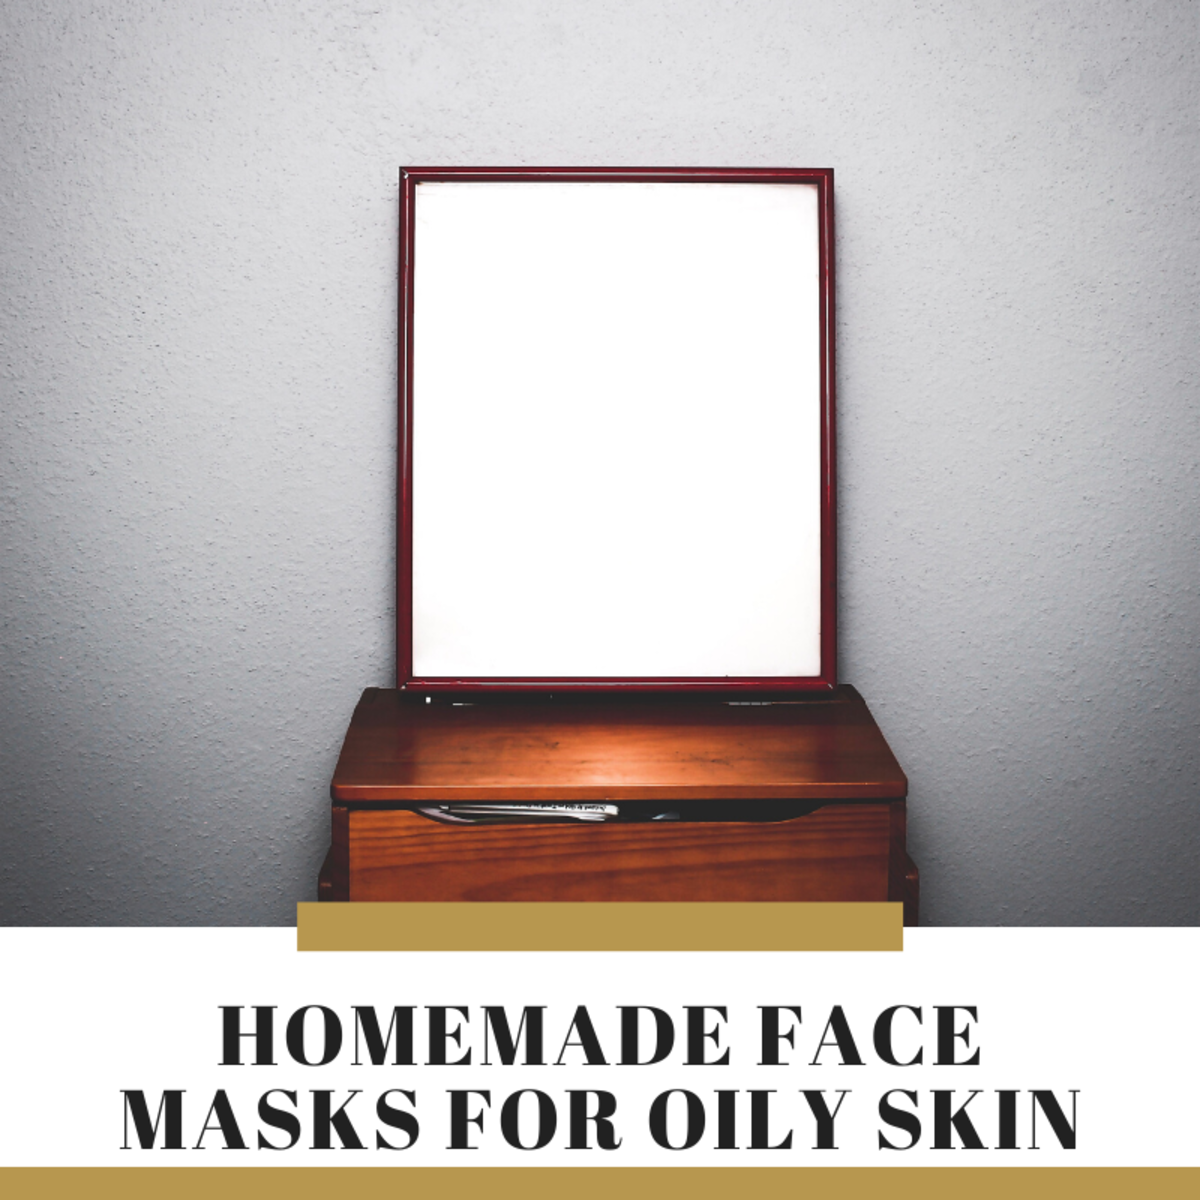 Best Homemade Face Masks for Oily Skin